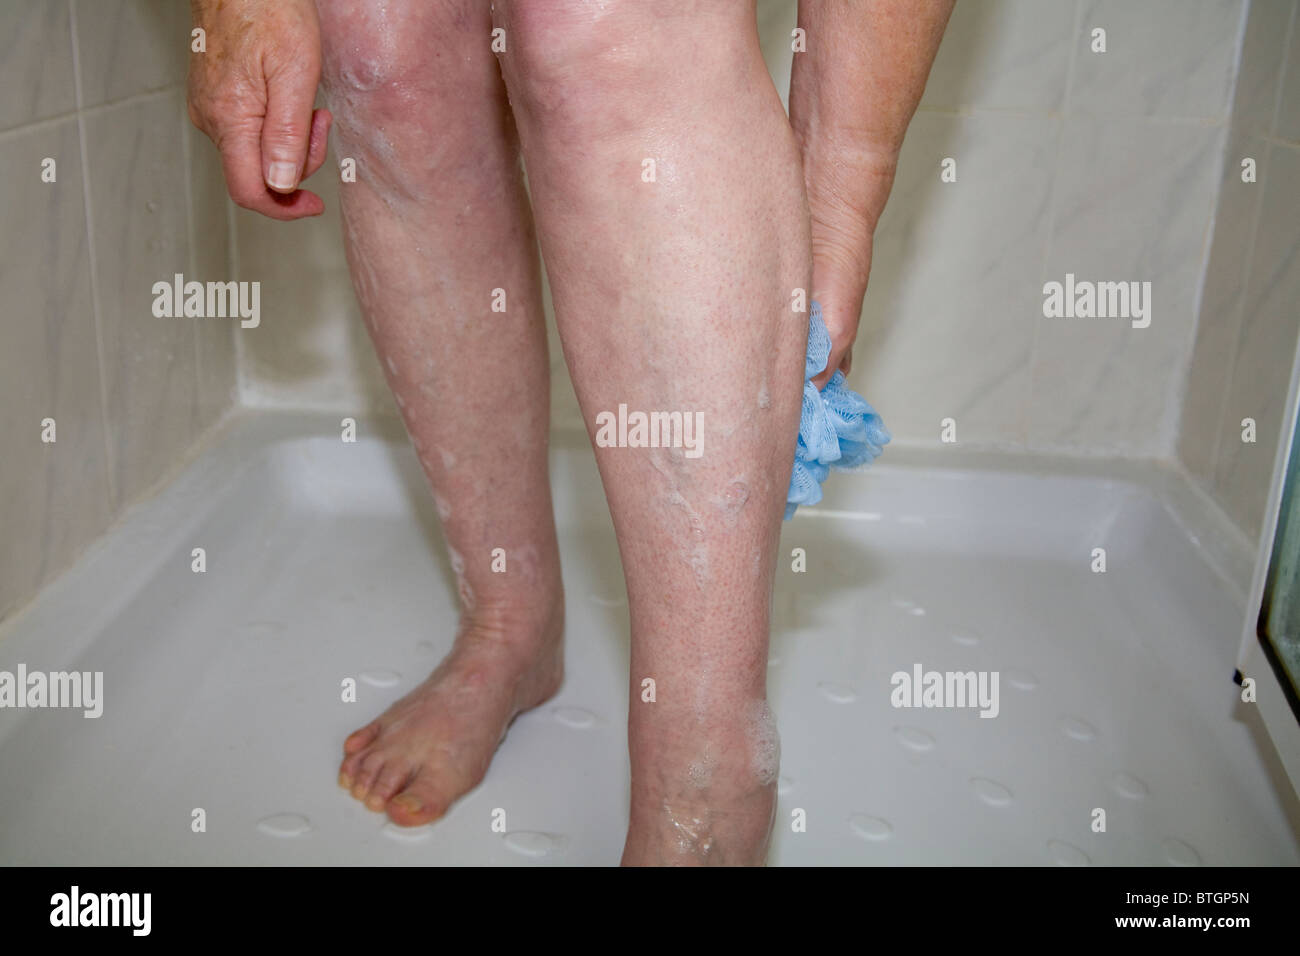 Close up elderly woman washing leg in a shower cubicle using blue body puff - Stock Image